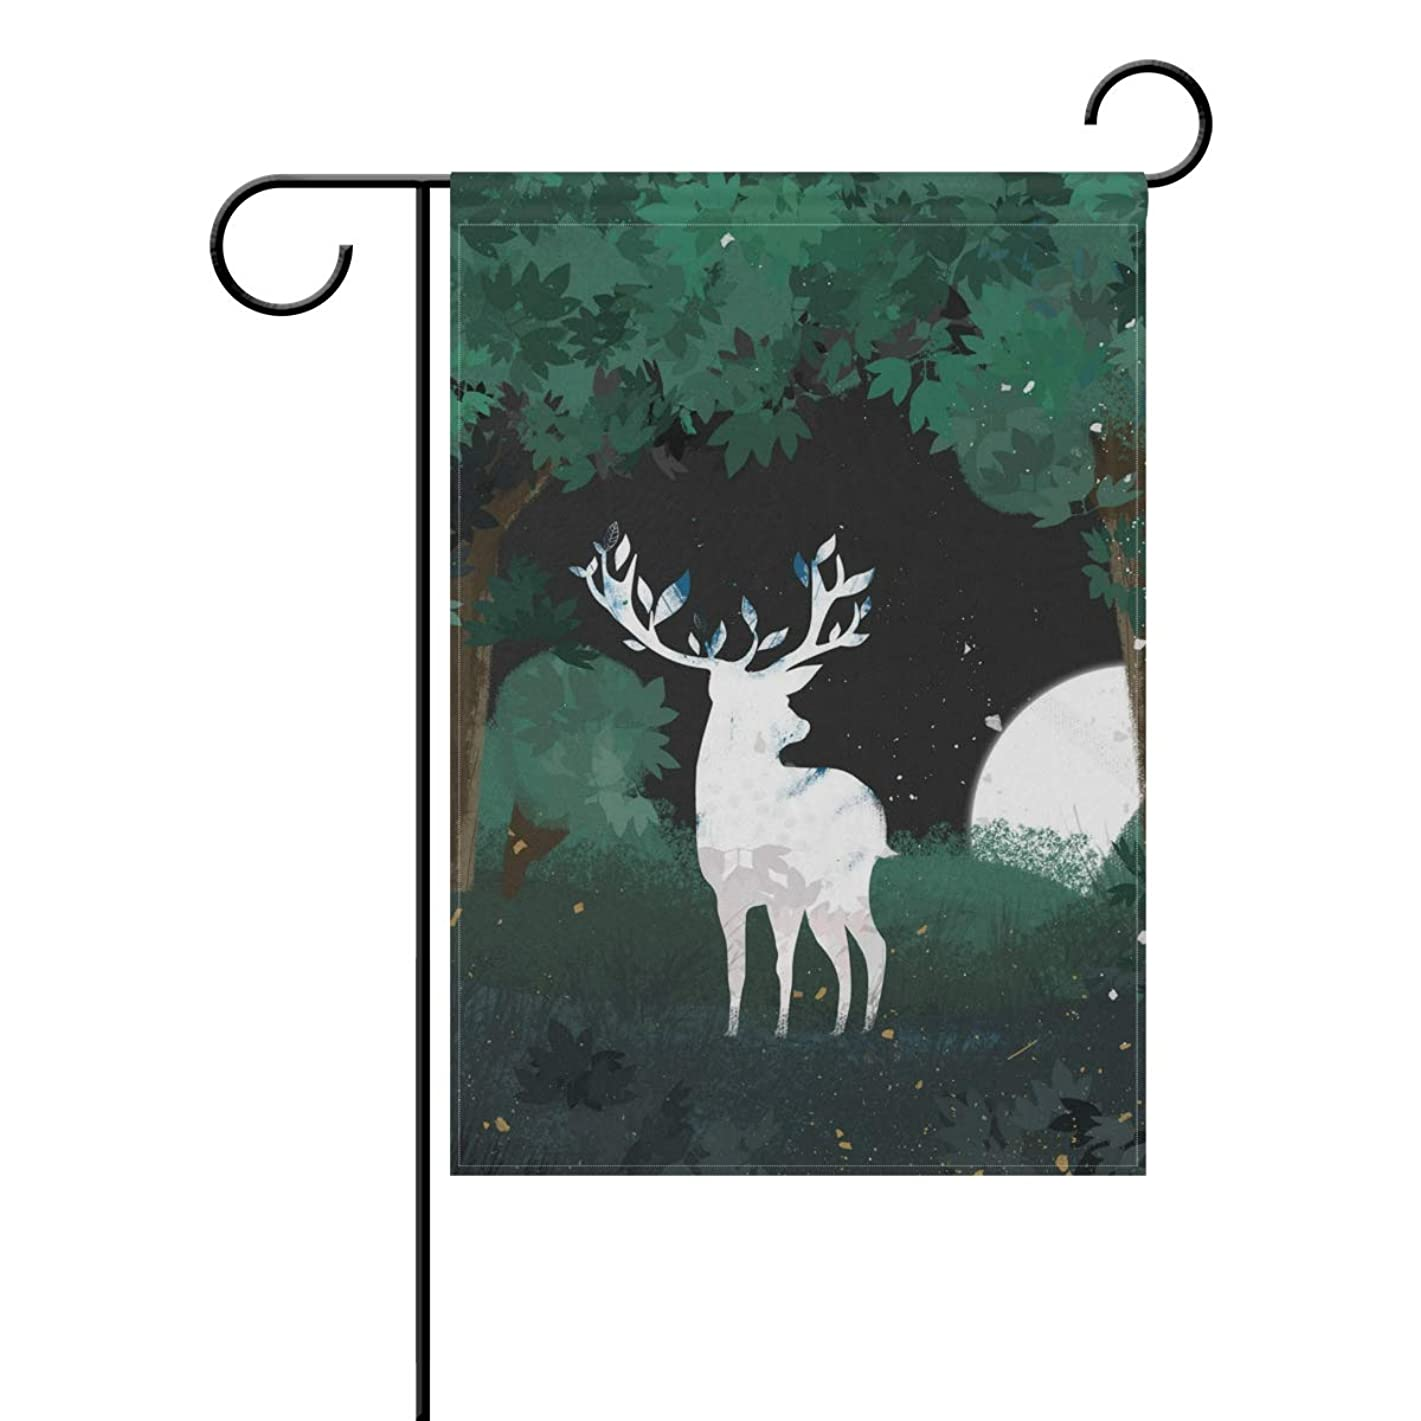 Chic Houses Reindeer Forest Watercolor Painting Home and Garden Flag, Lovely Animal Silhouette Fairy Tale Nice Decorative Flags for Outside, Great Gift 12 x 18 Inch 2030918